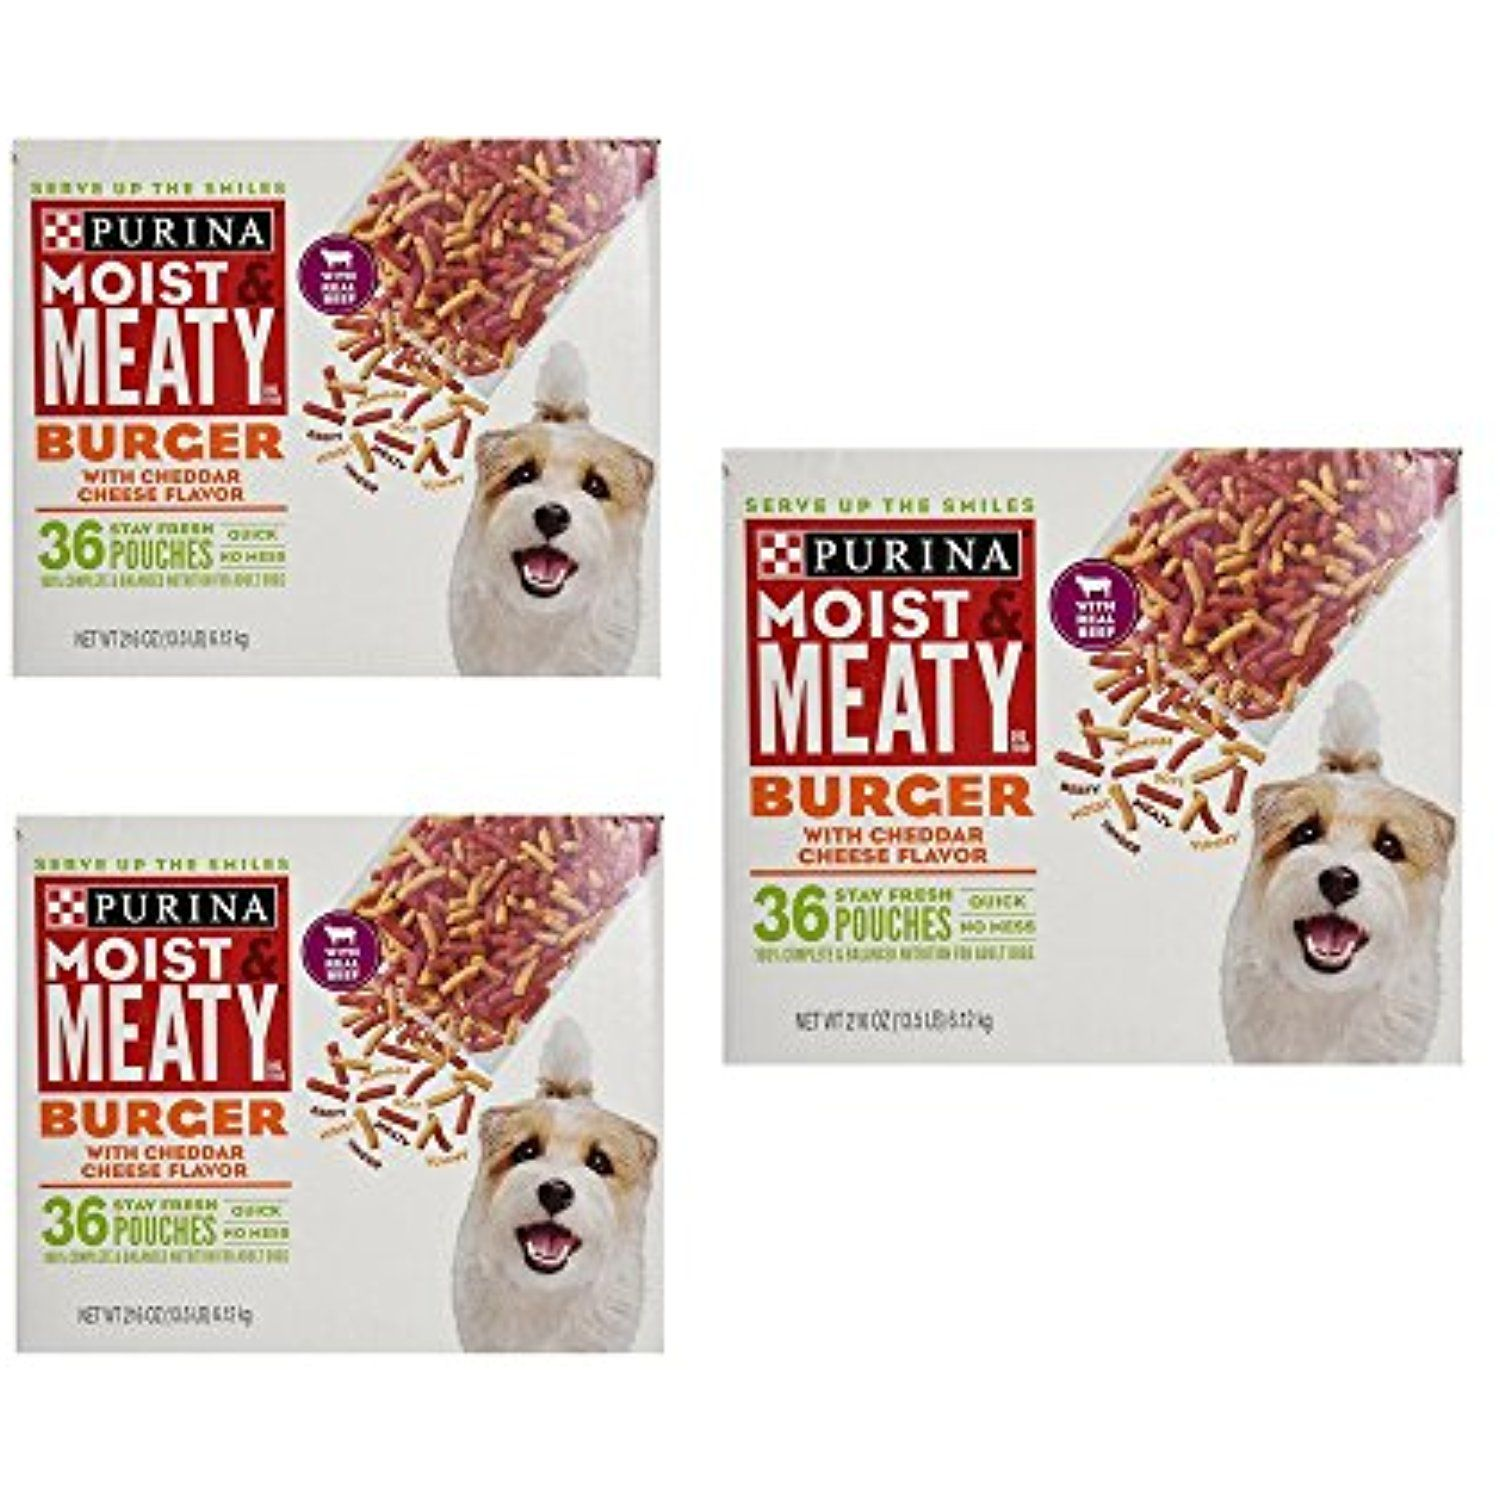 Purina Moist Meaty Dog Food Burger With Cheddar Cheese Flavor